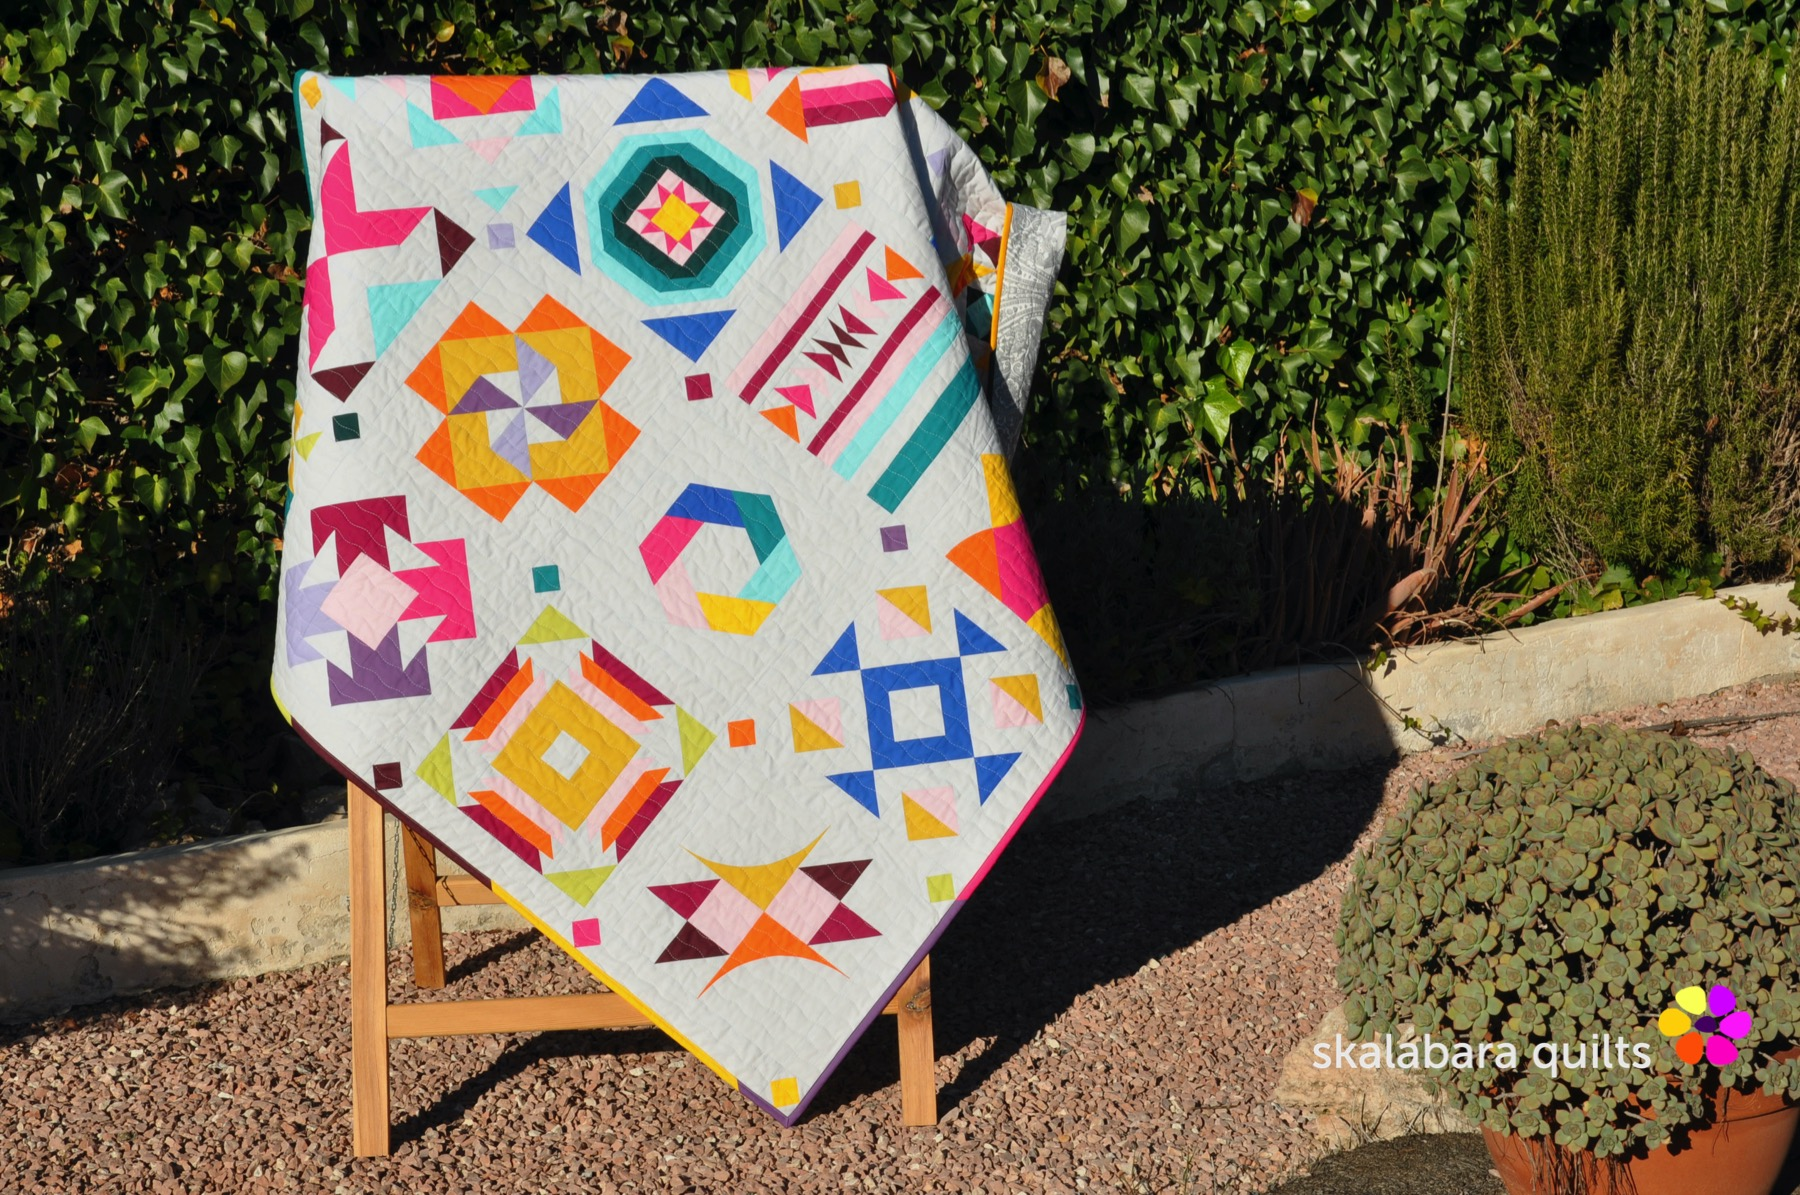 21 summer sampler 2020 3 - skalabara quilts